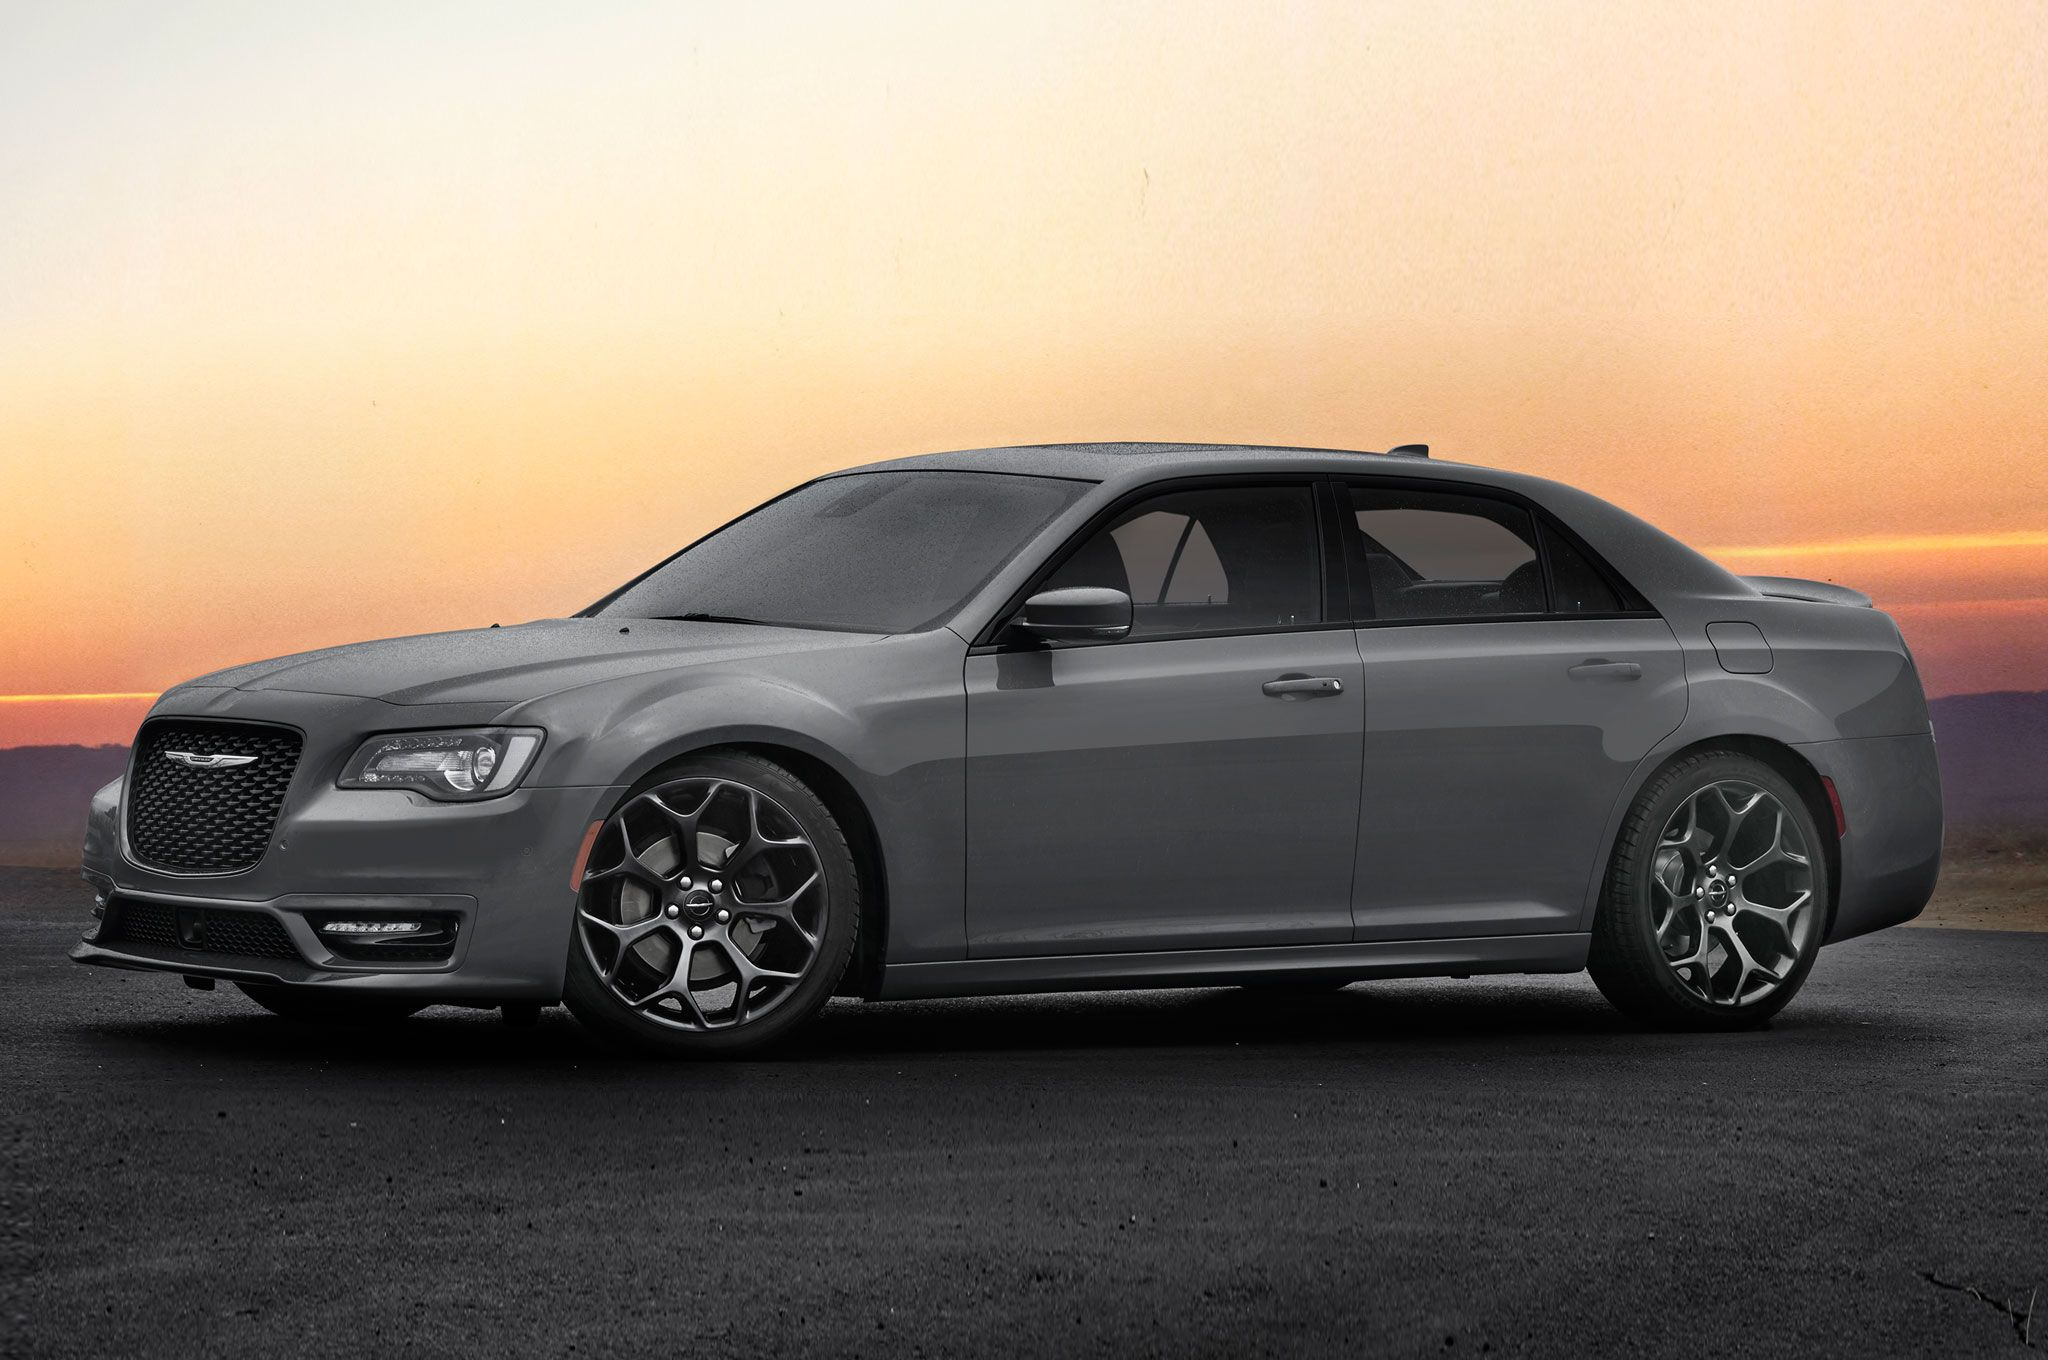 2017 Chrysler 300S Dresses Up with New Sport Appearance Packages. Extra pieces of flair for Chrysler's big sedan.